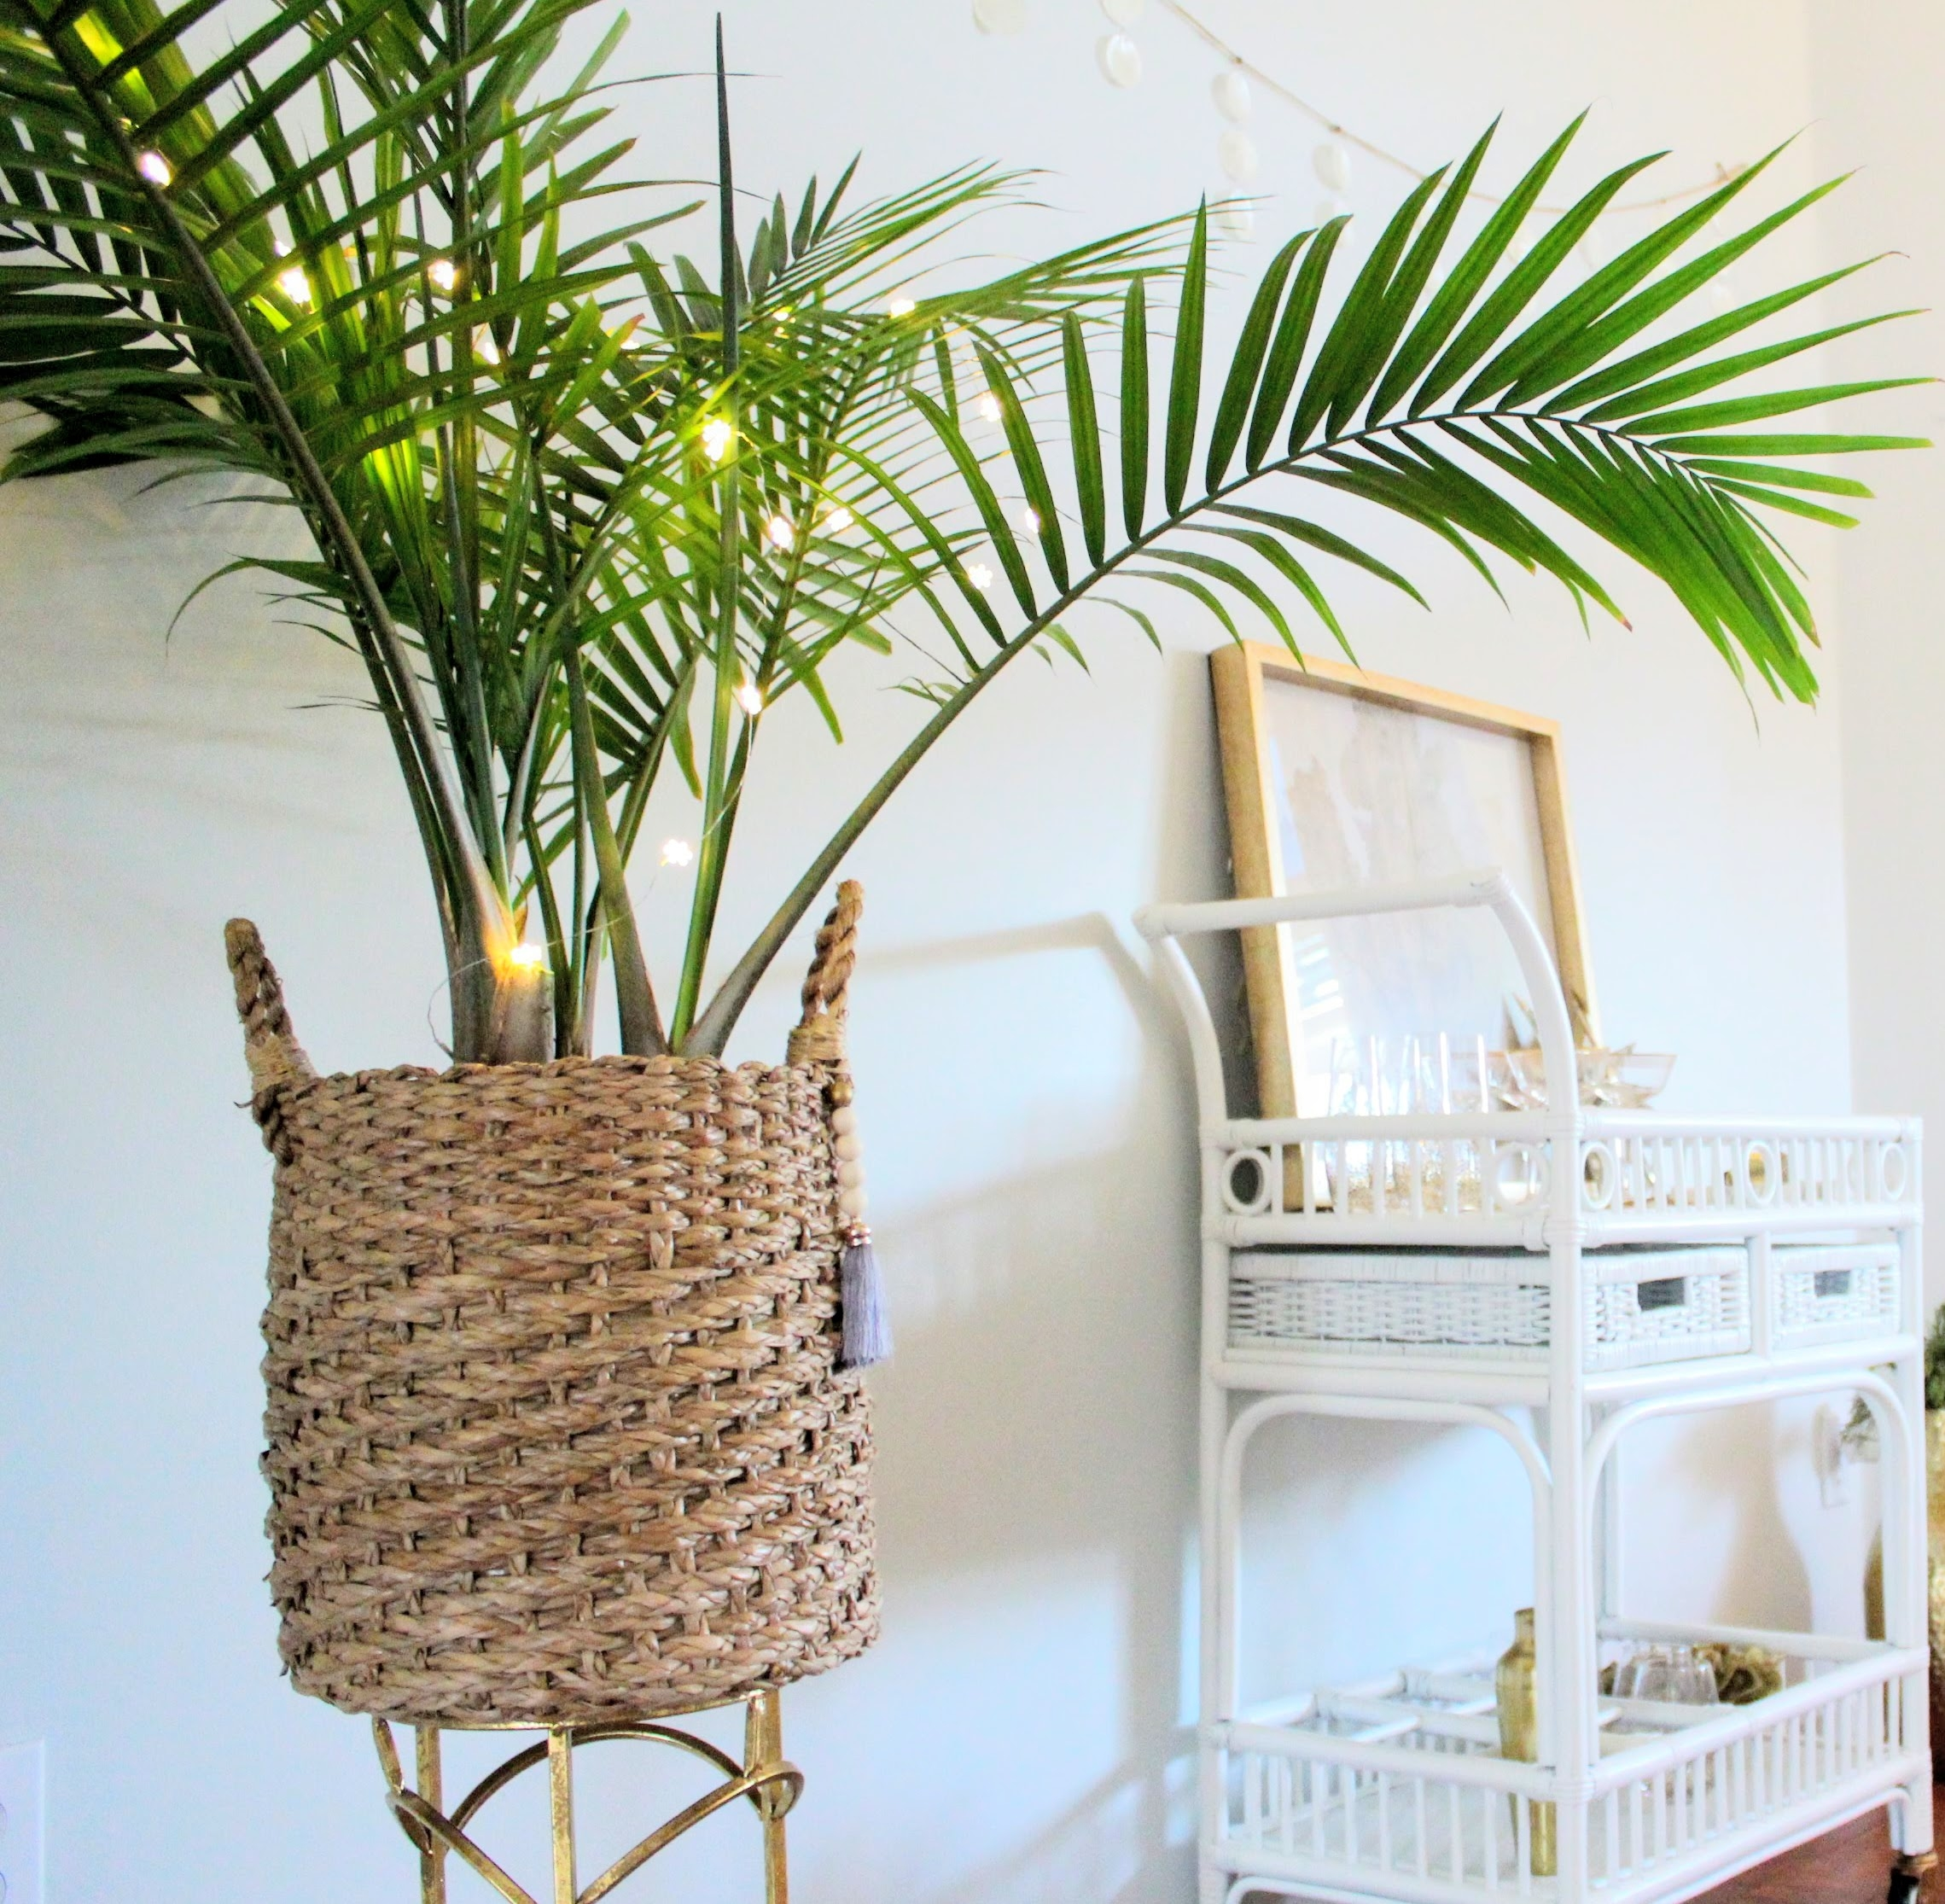 How to Care for an Indoor Majesty Palm — House Full of Summer